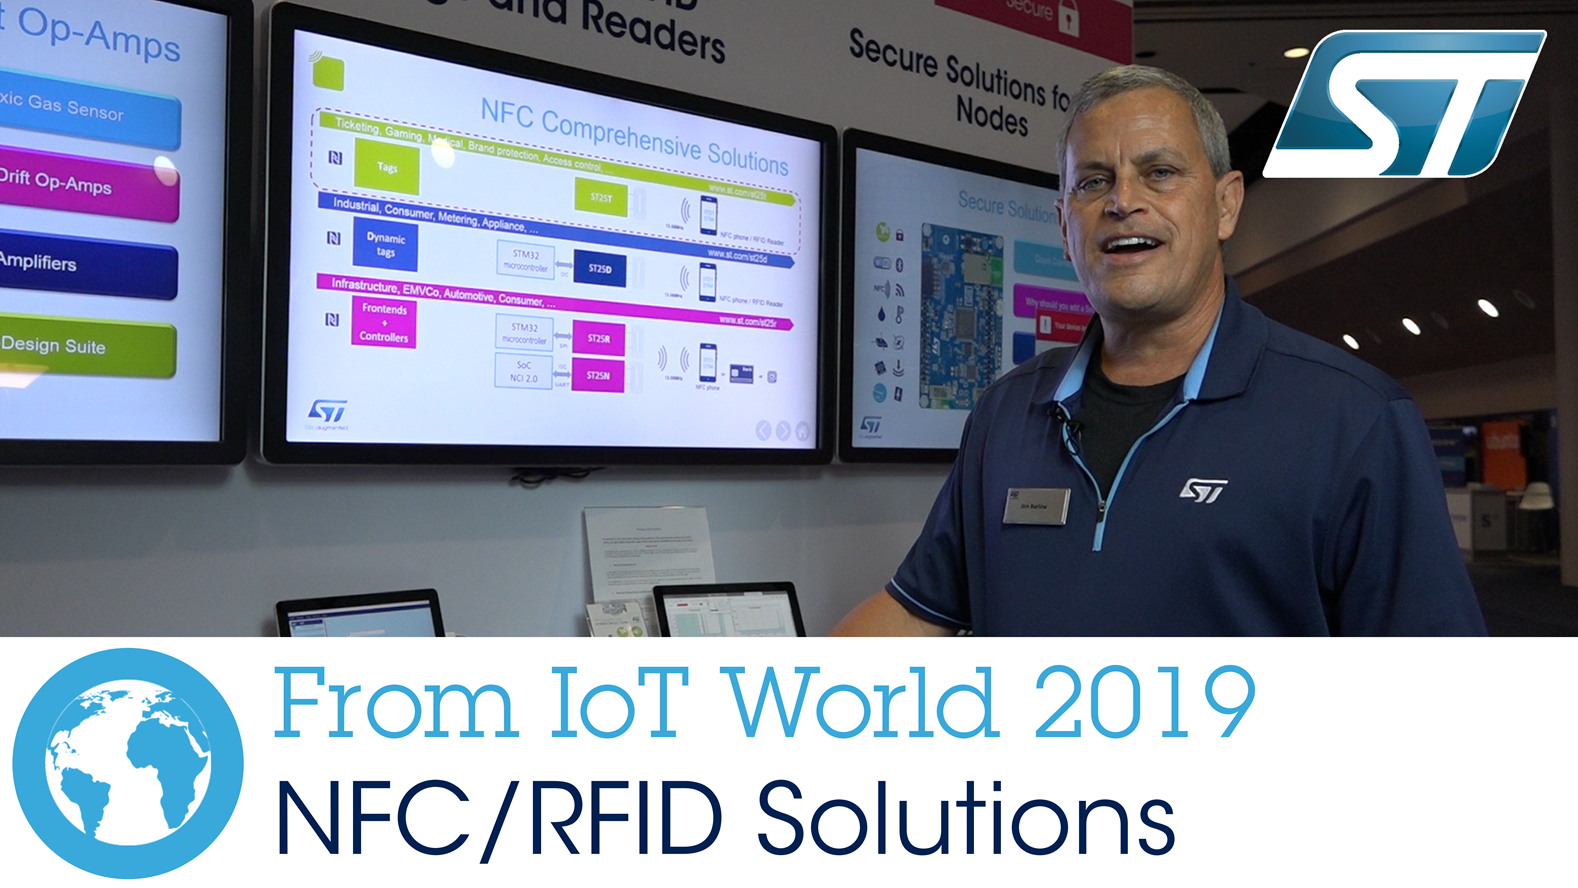 From IoT World 2019